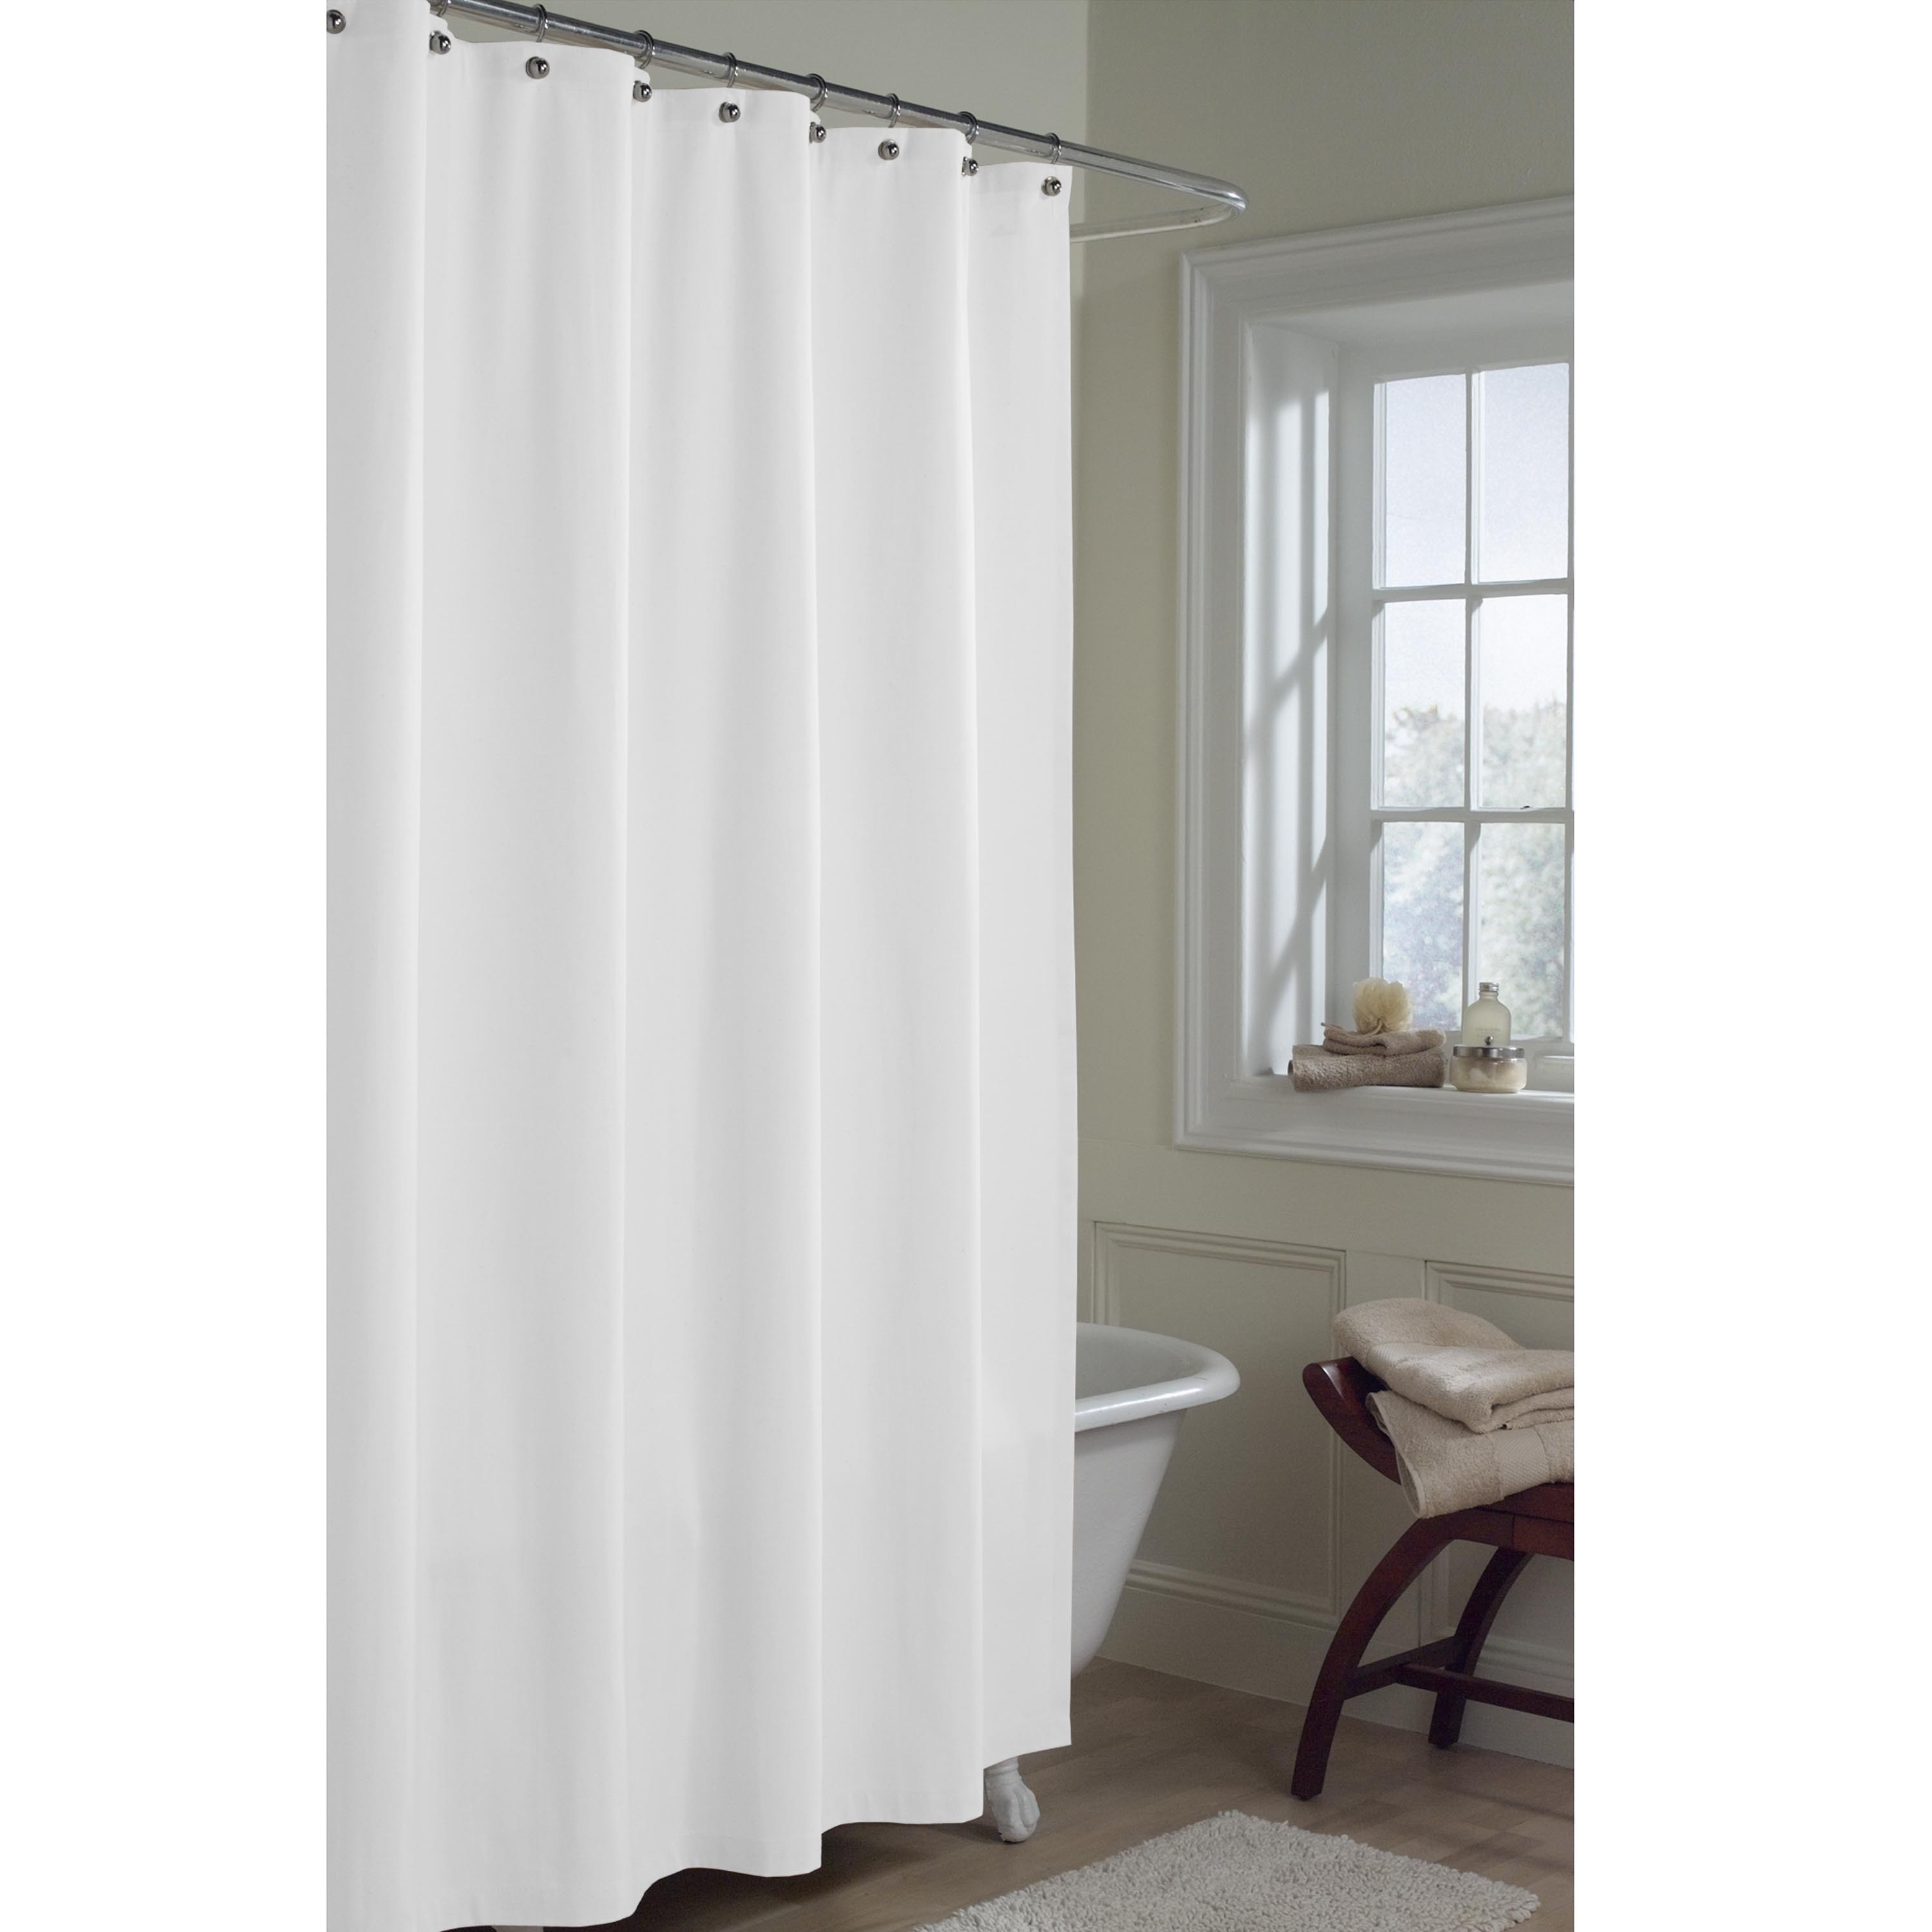 com ex damask dp liner kitchen linen curtain shower liners home fabric amazon cell stripe